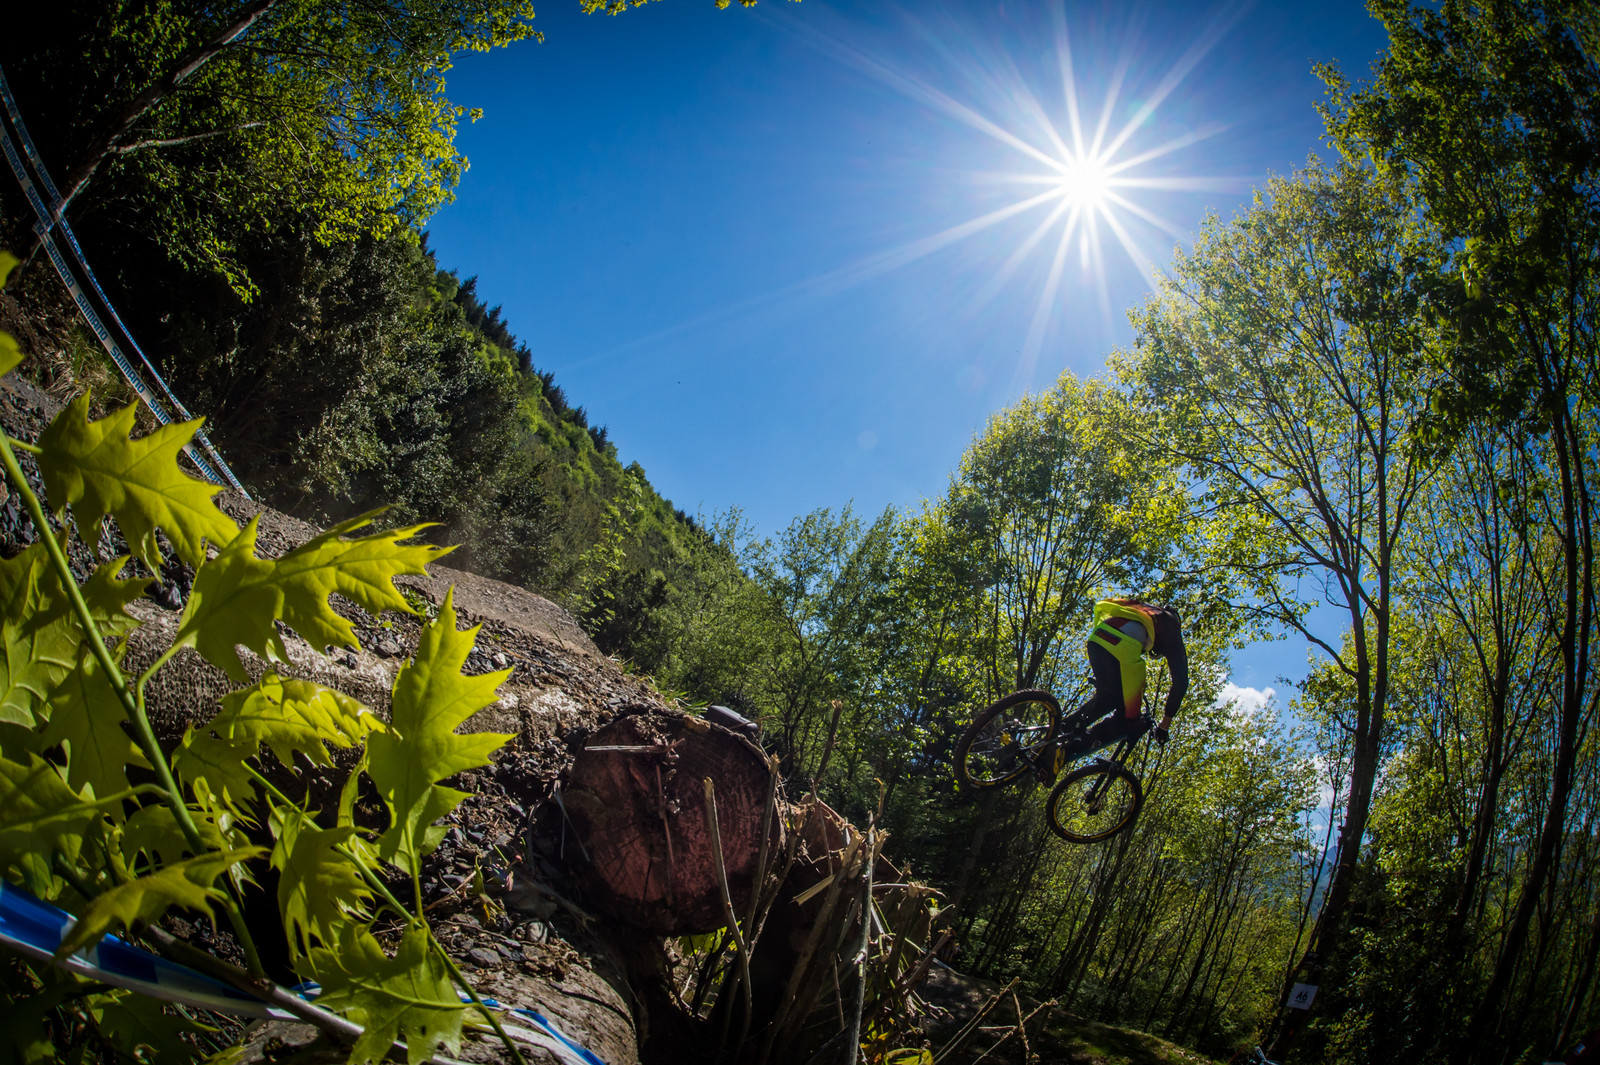 Florent Payet - Lourdes World Cup Timed Training Action Photos - Mountain Biking Pictures - Vital MTB